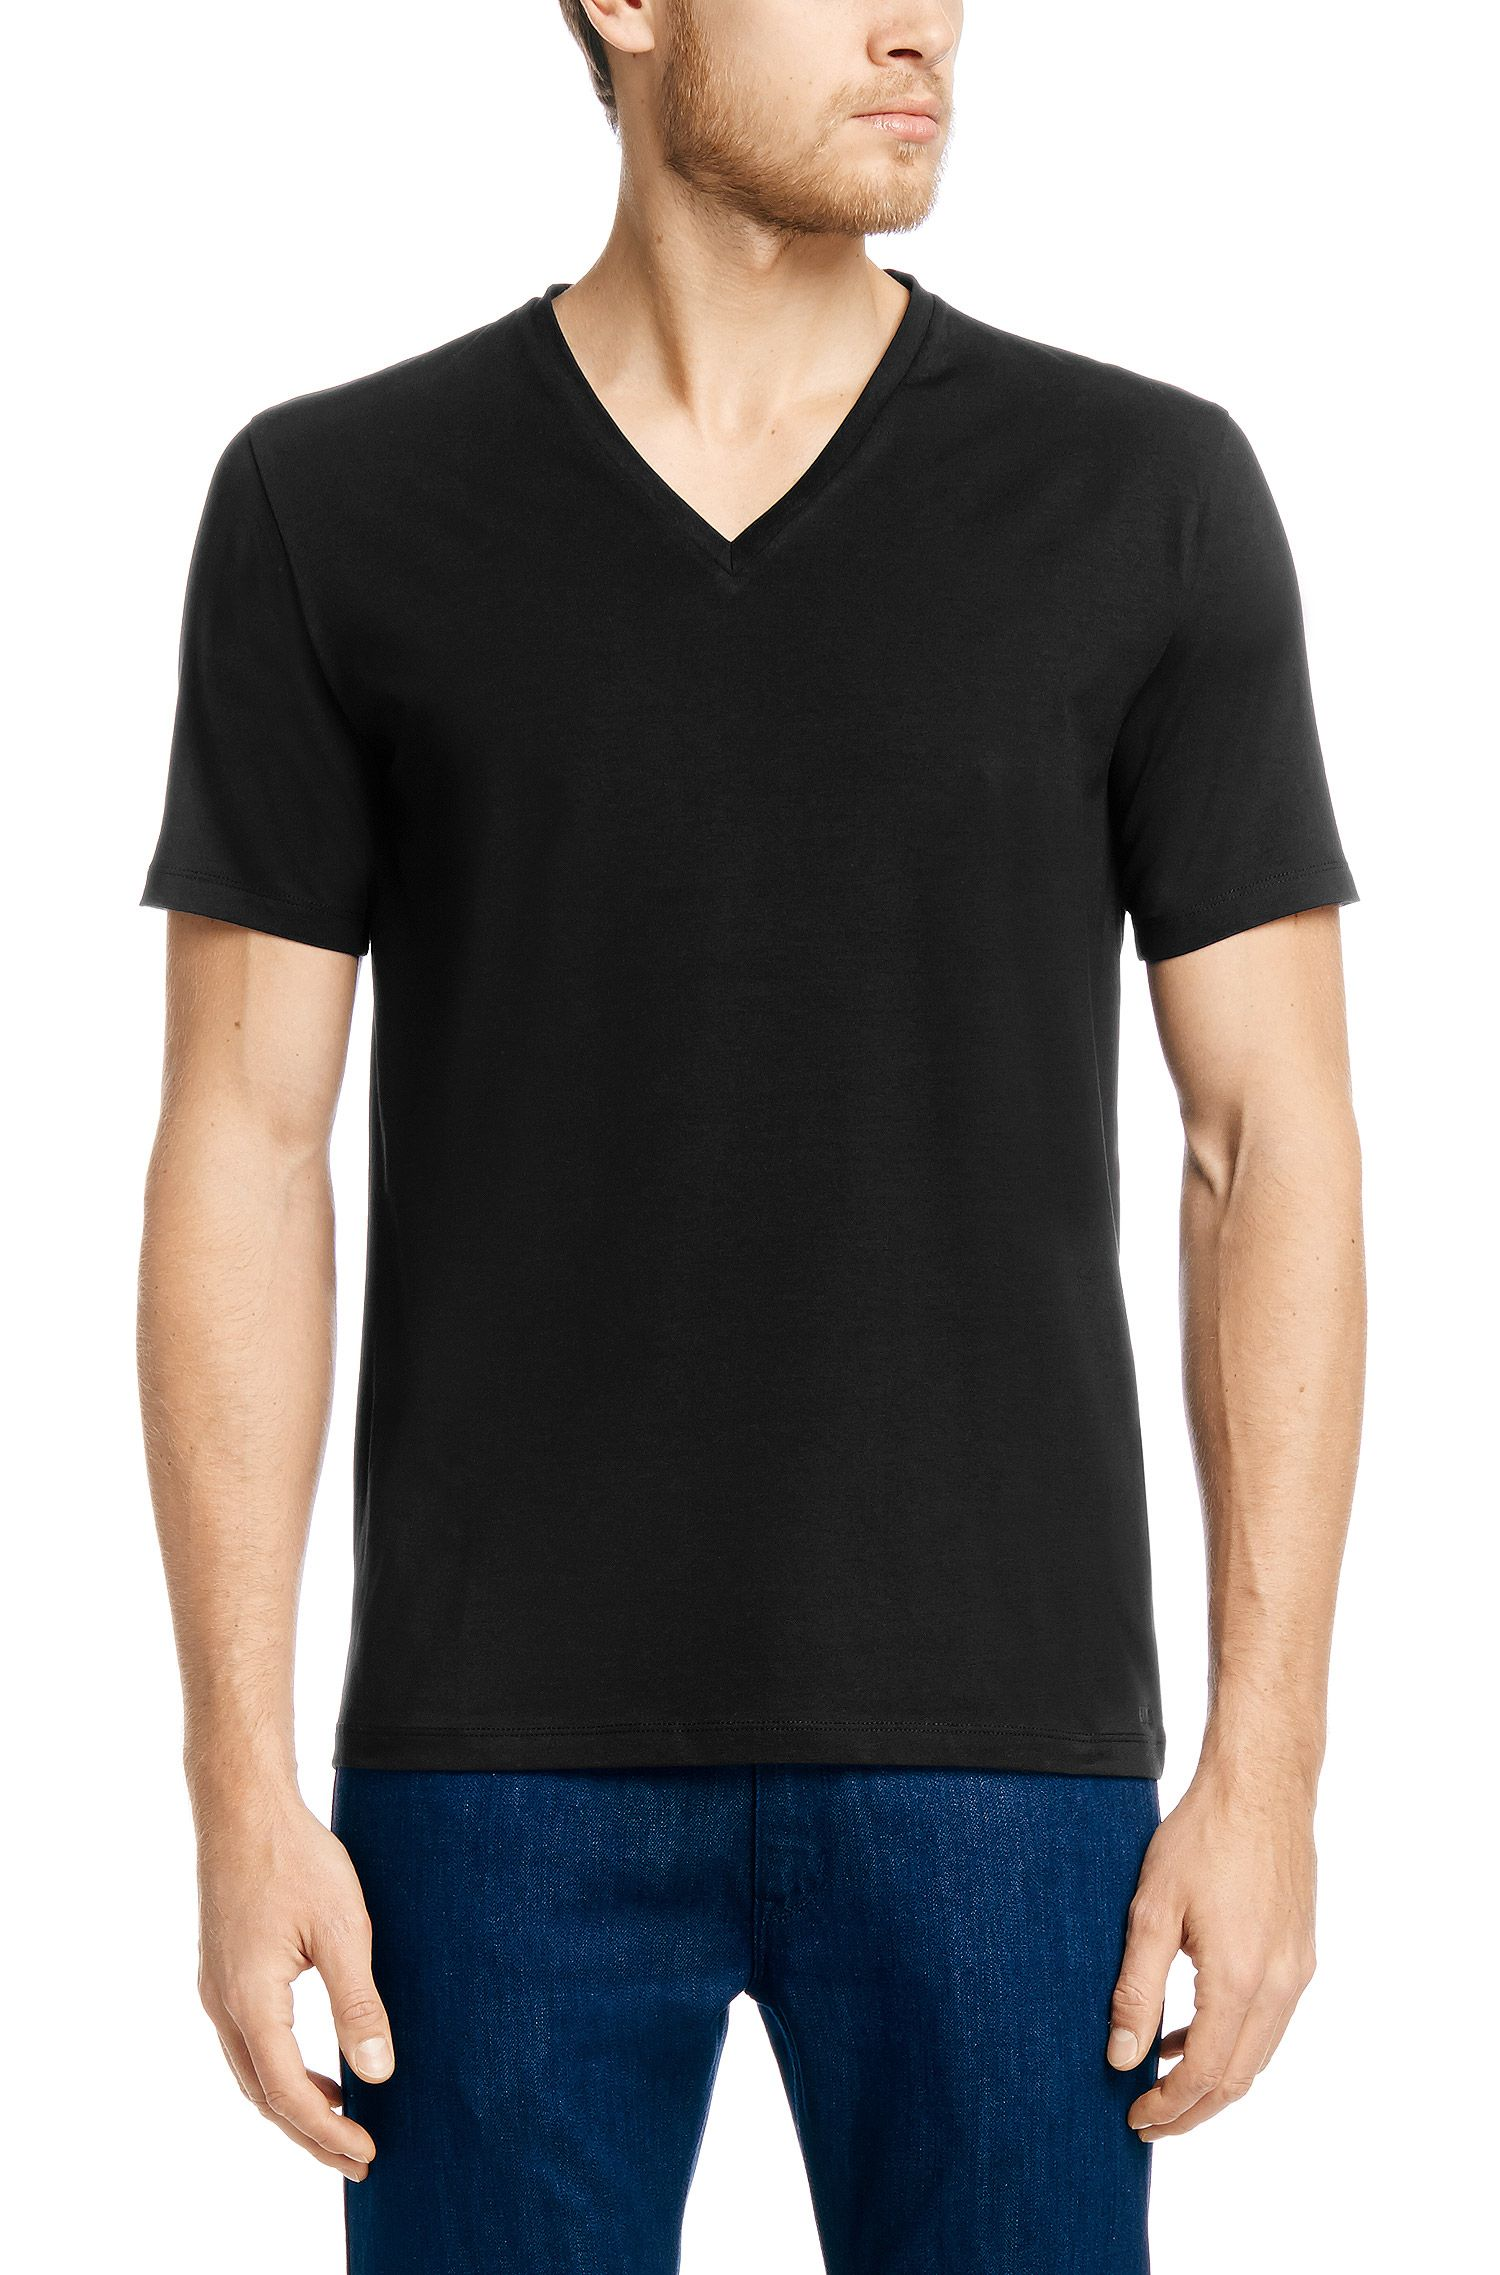 'Dredosos' | Stretch Cotton V-Neck T-Shirt